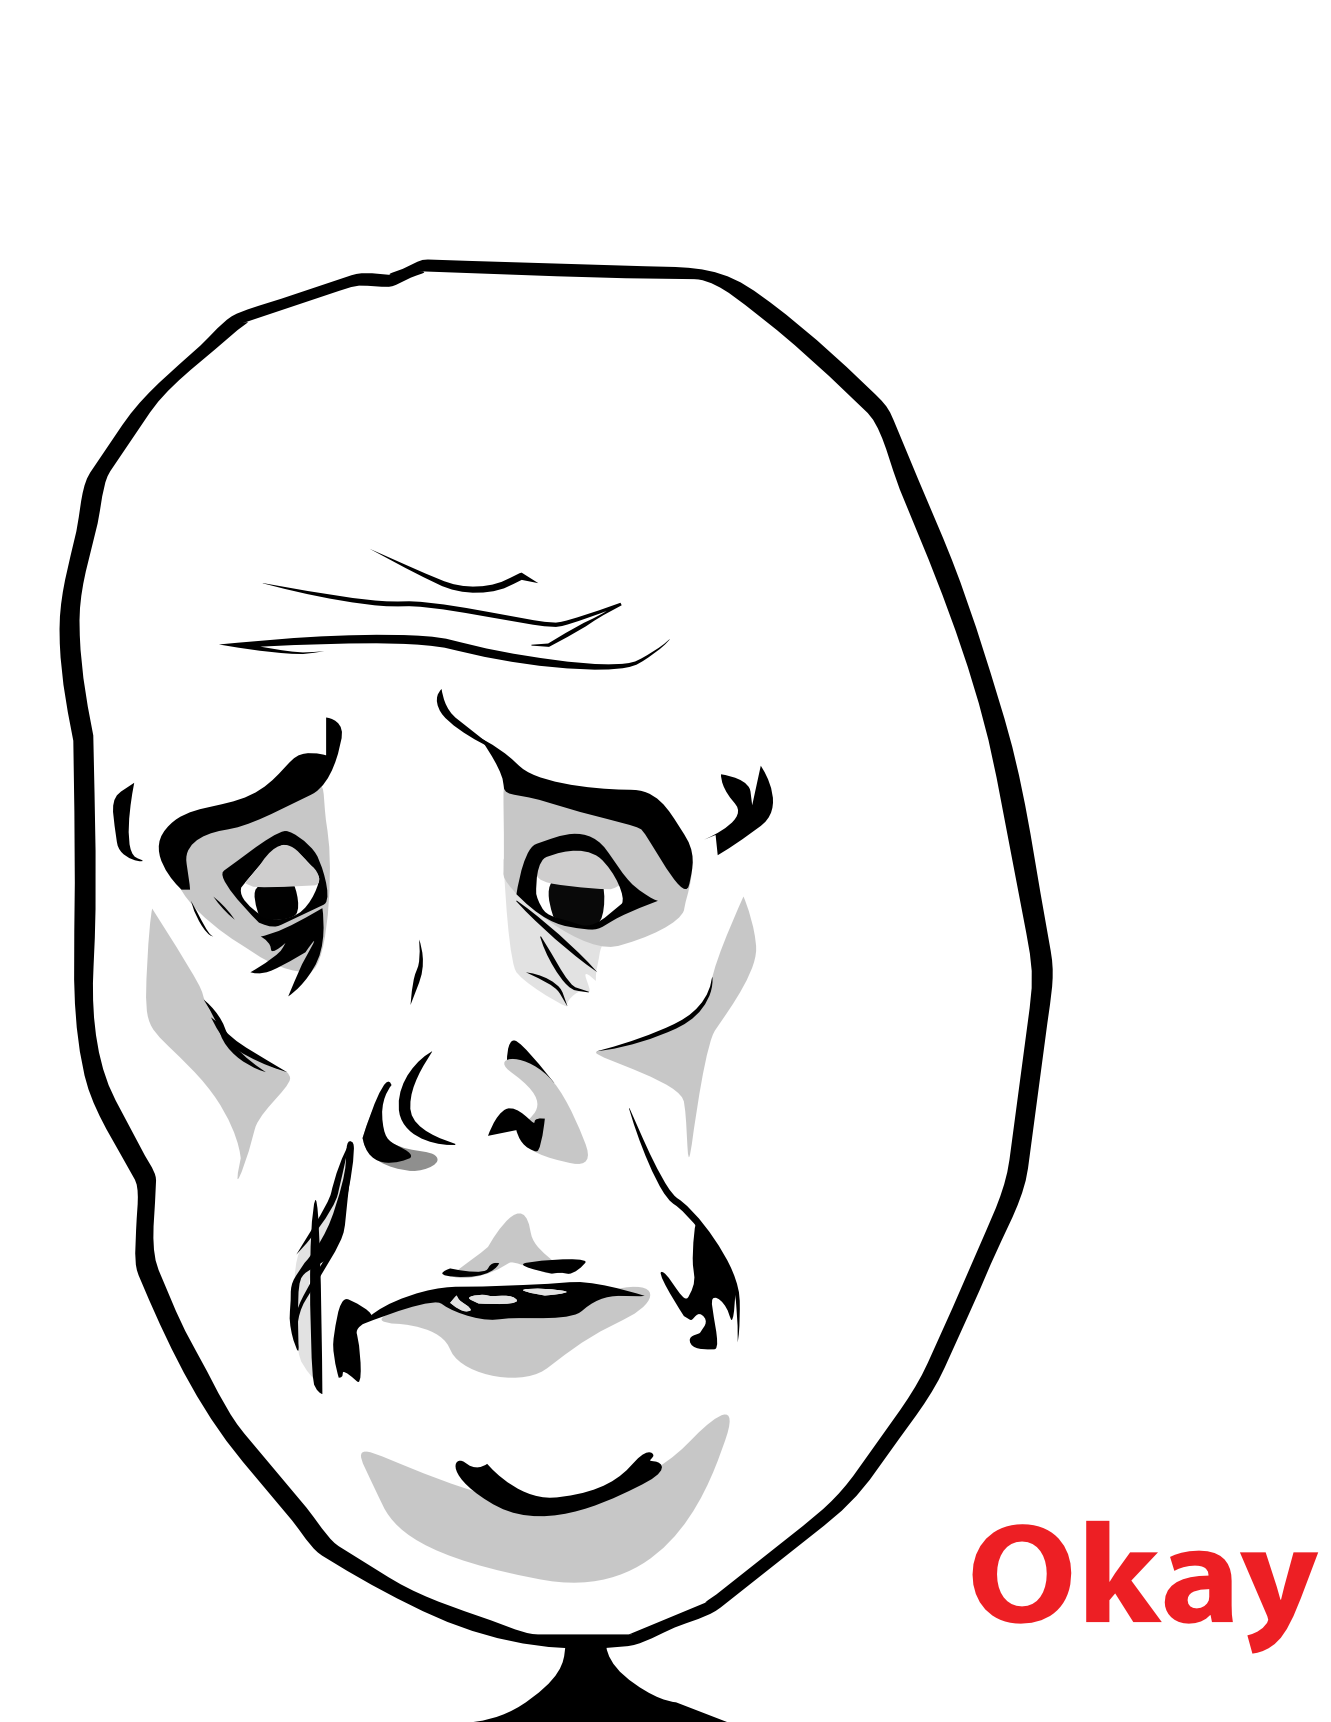 Image famous characters troll face okay meme face 215669g famous characters troll face okay meme face 215669g voltagebd Image collections